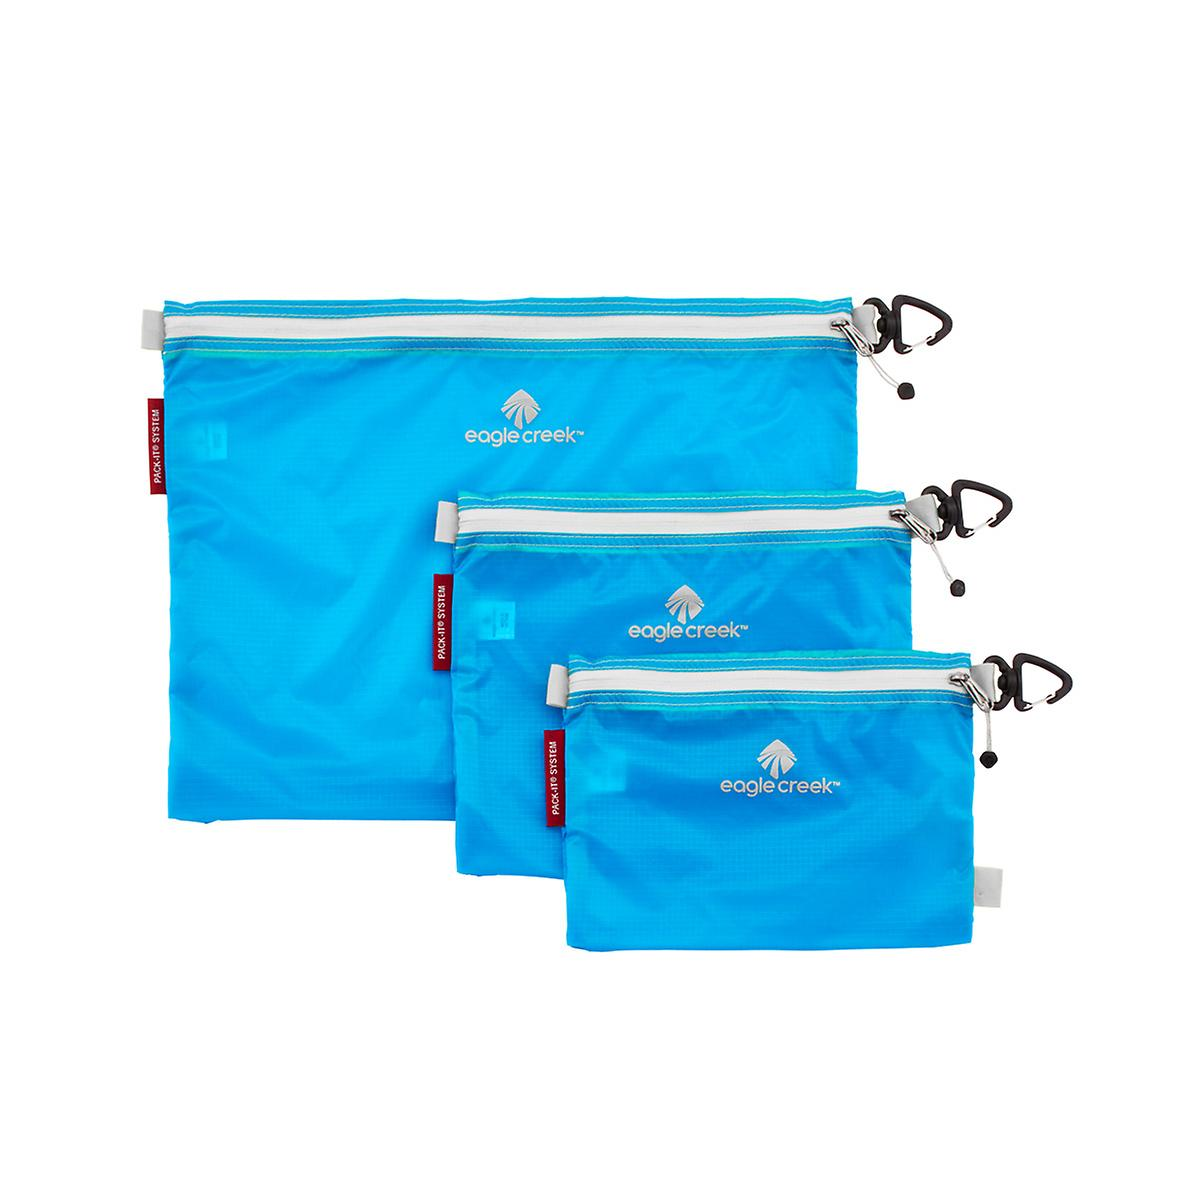 Eagle Creek Brilliant Blue Specter Pack-It Sacs Set